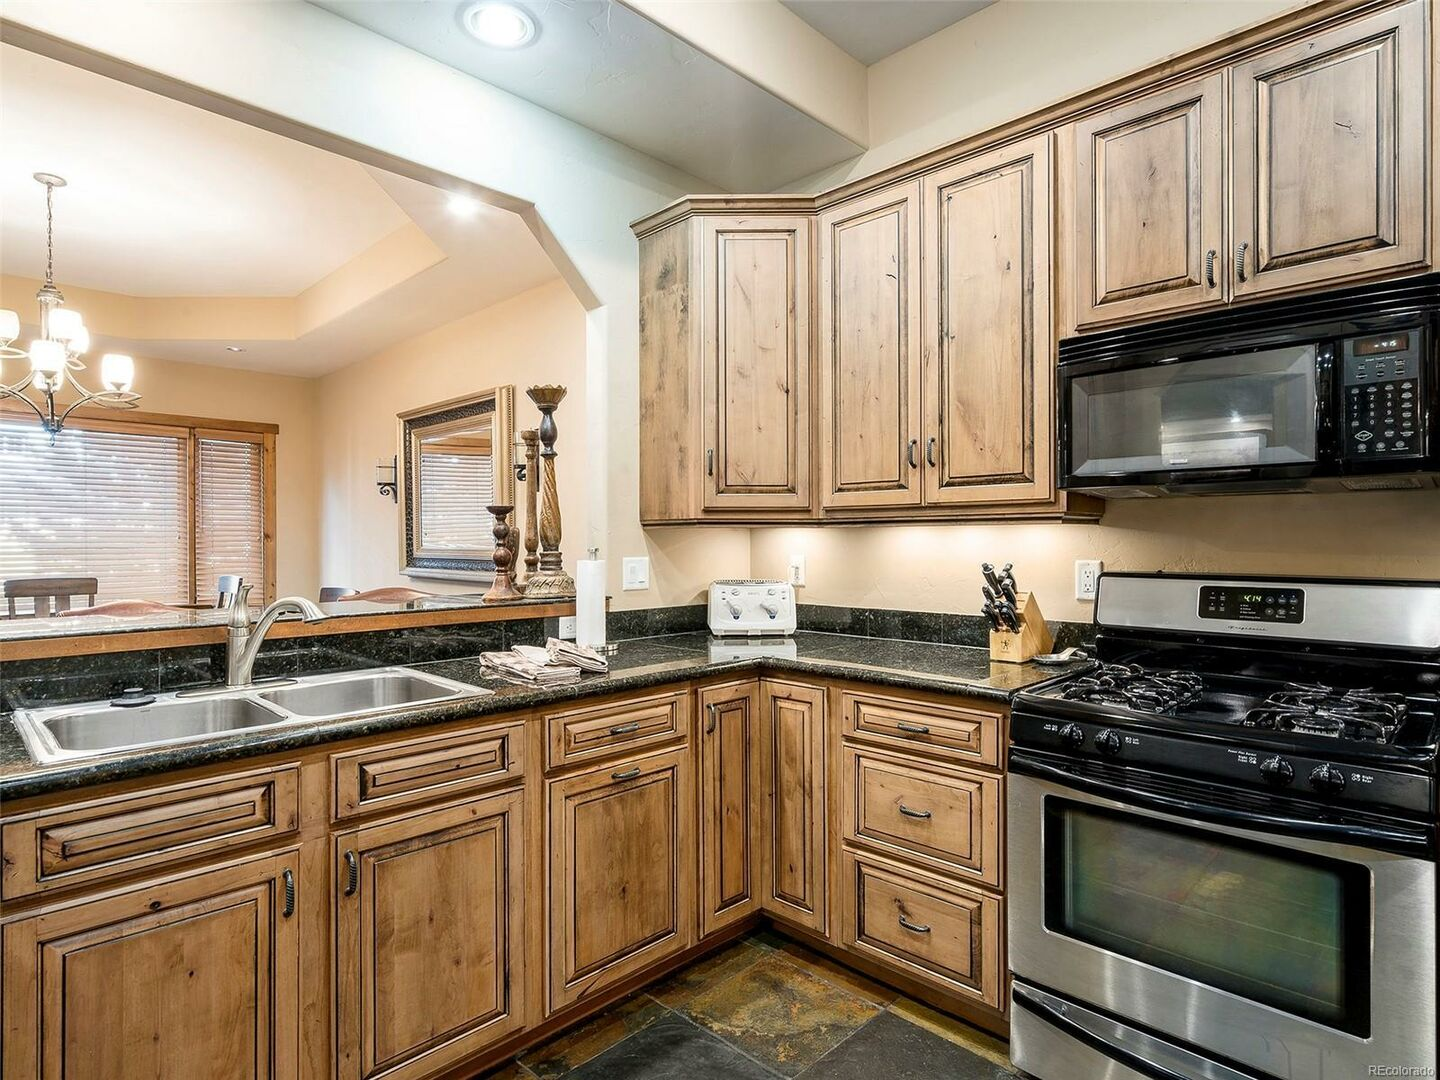 Kitchen with Microwave and Toaster.